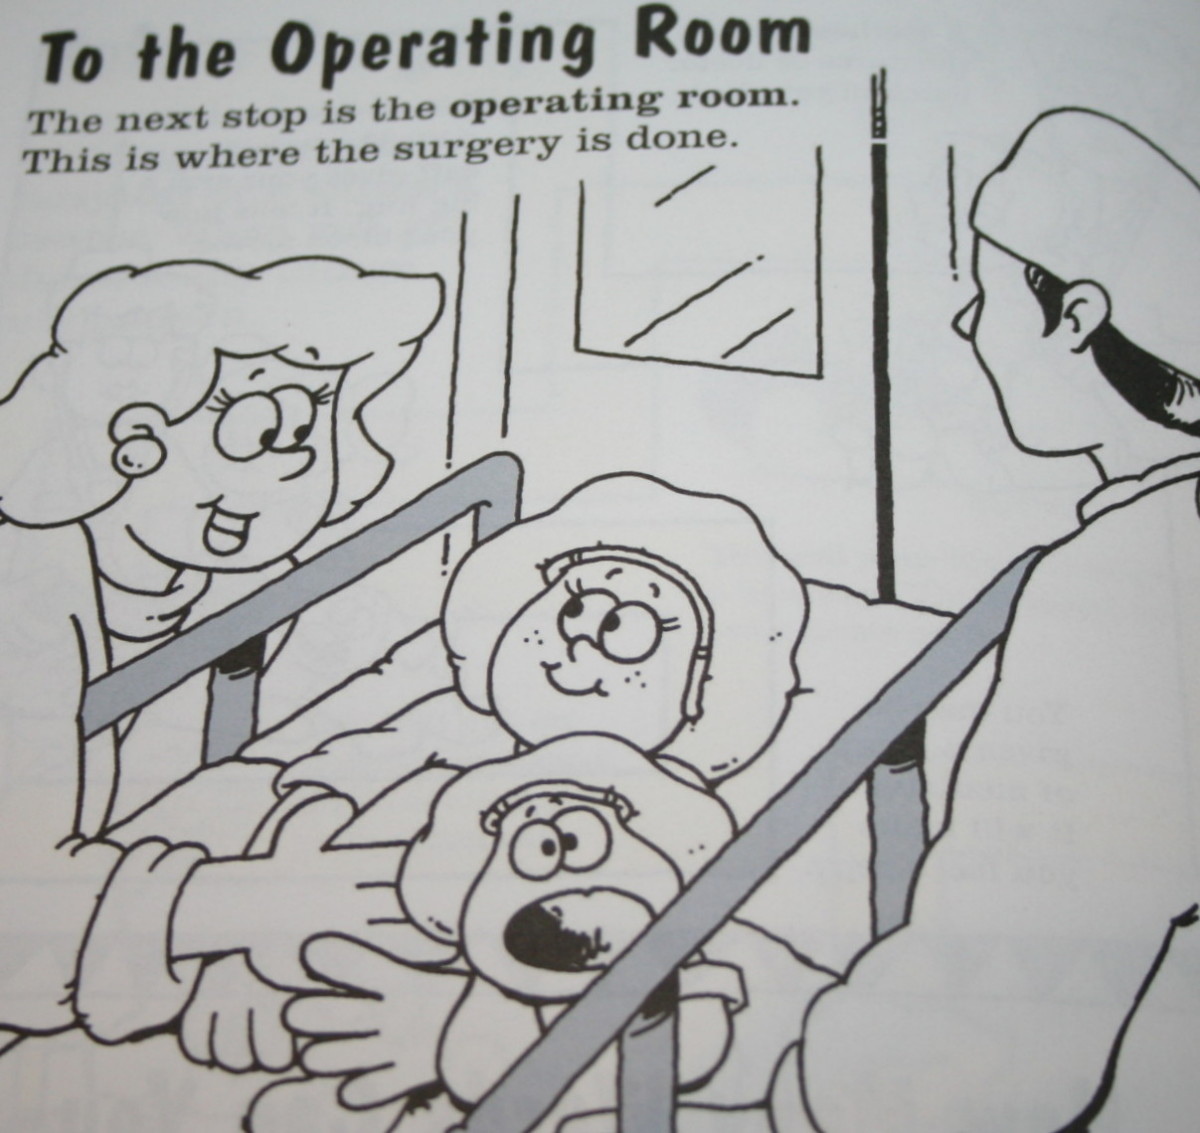 From My Surgery Activity Book by Krames Patient Education.